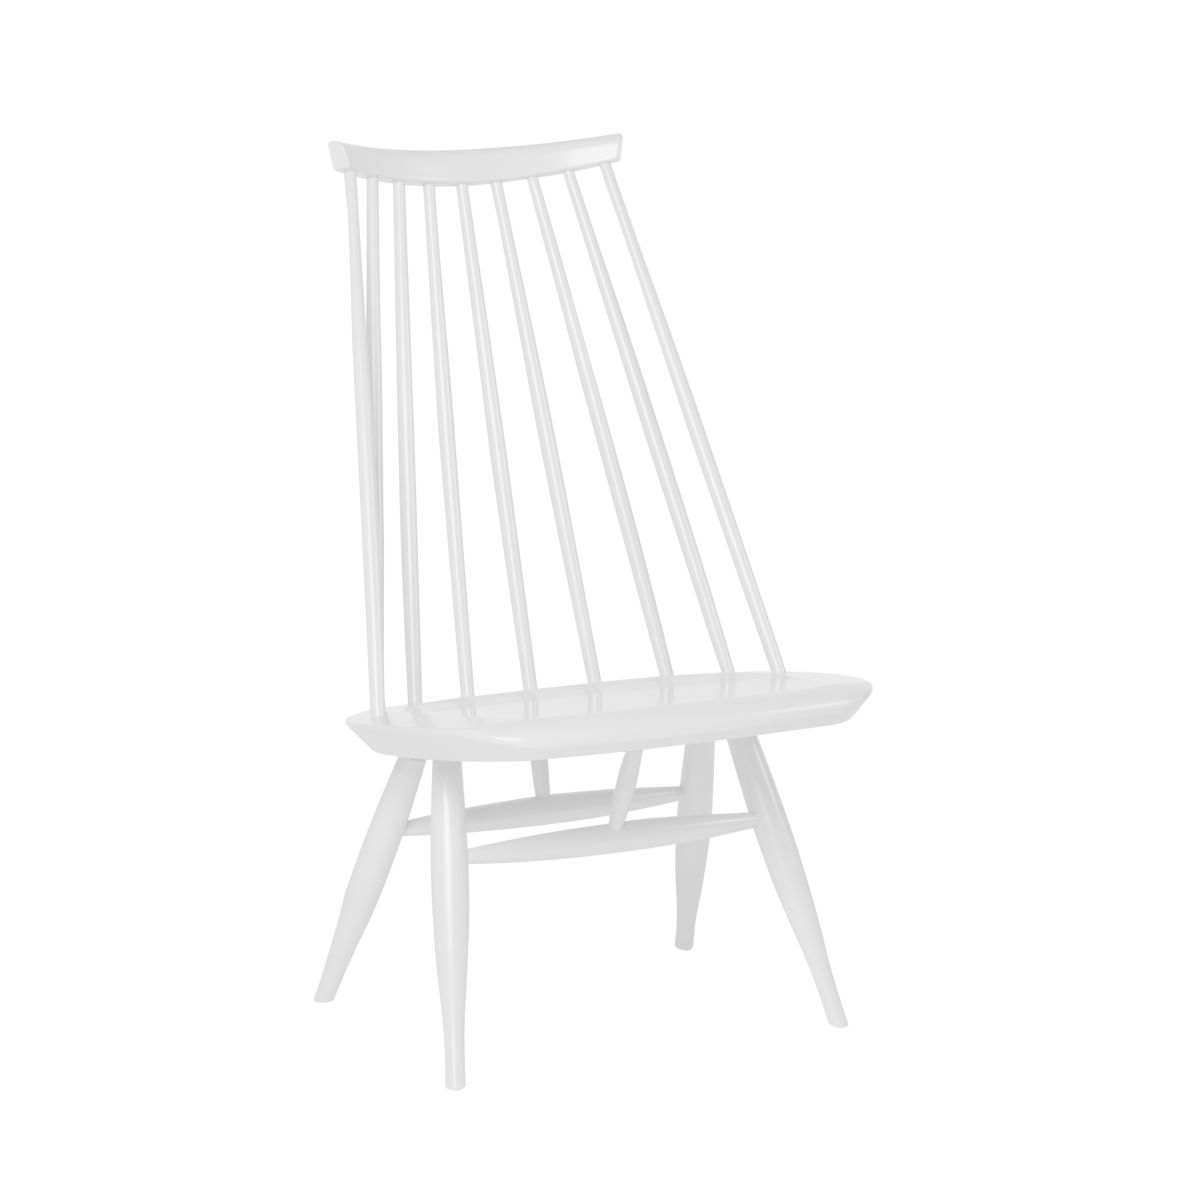 Mademoiselle Lounge Chair white lacquer